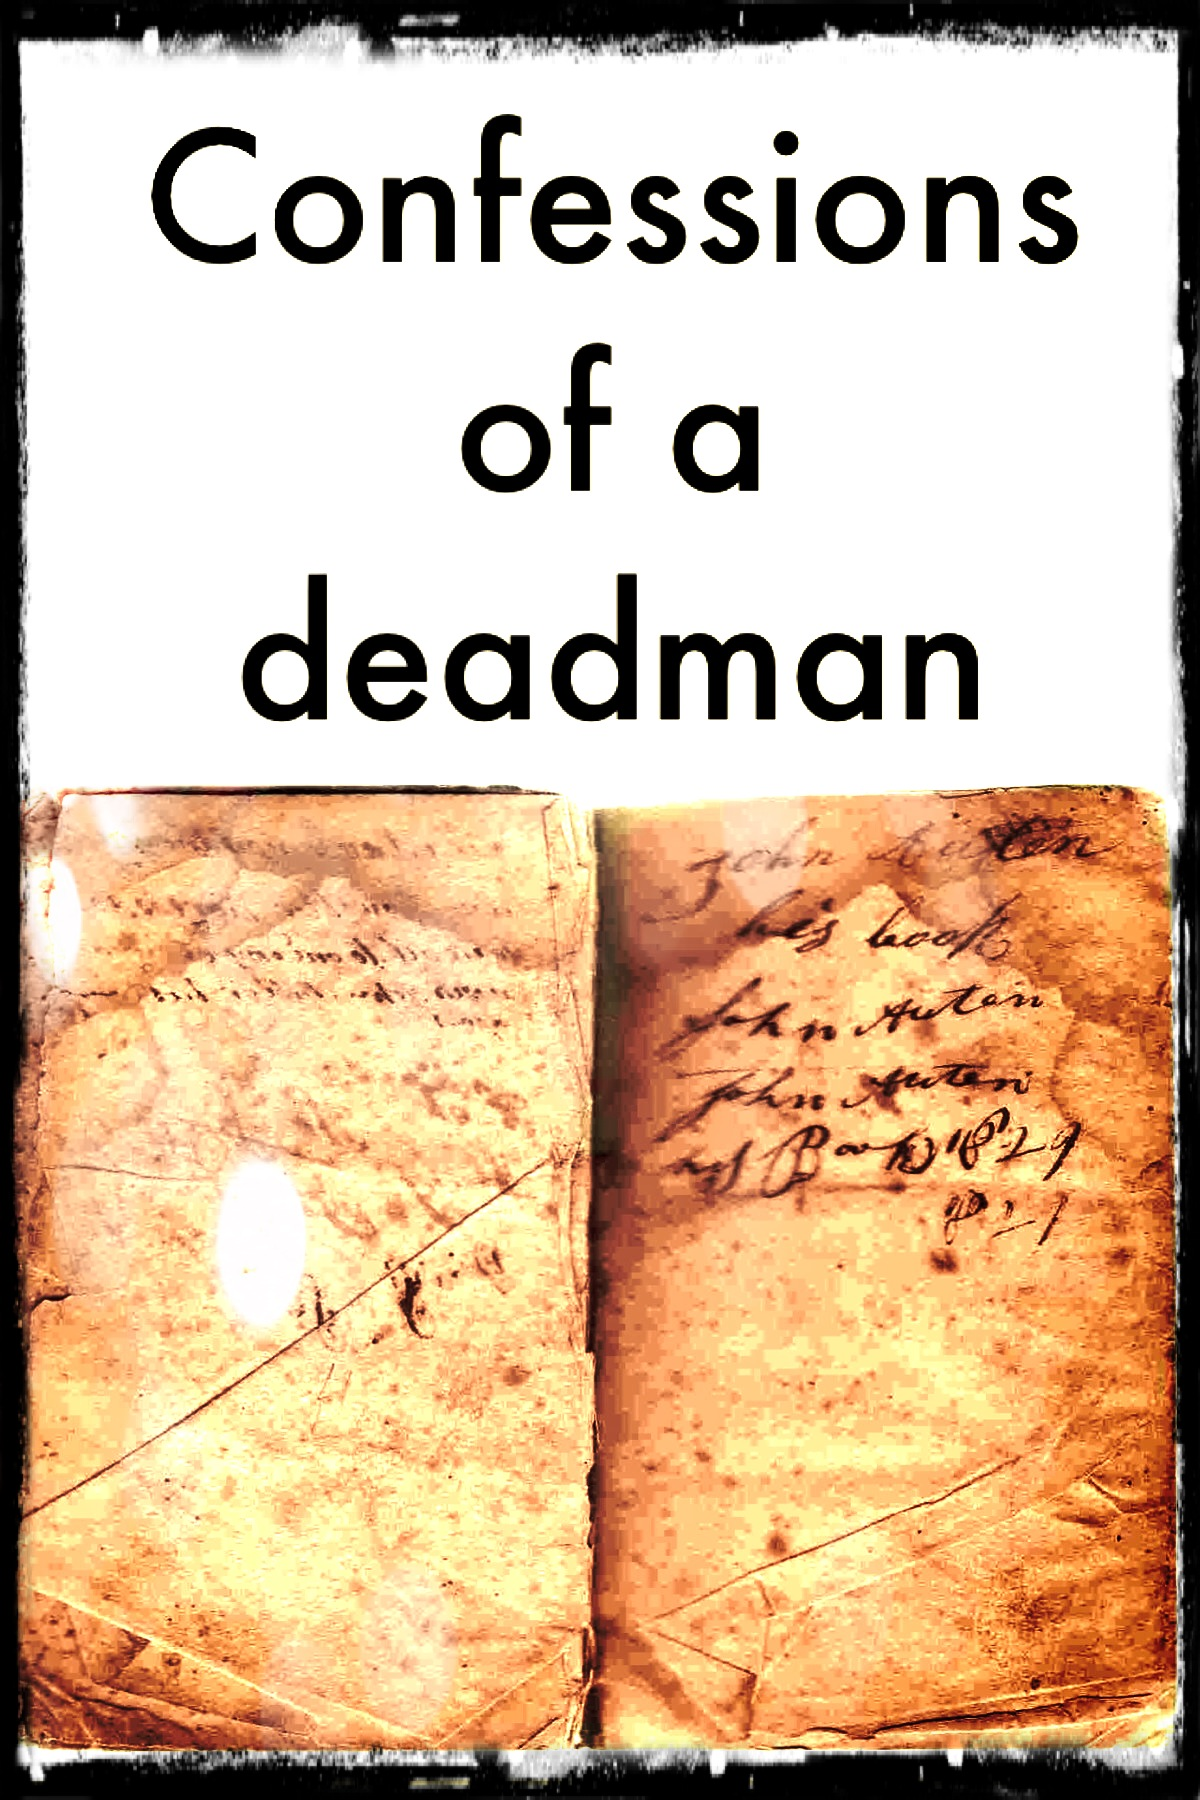 Confessions of a Deadman – Pastor\'s Ponderings